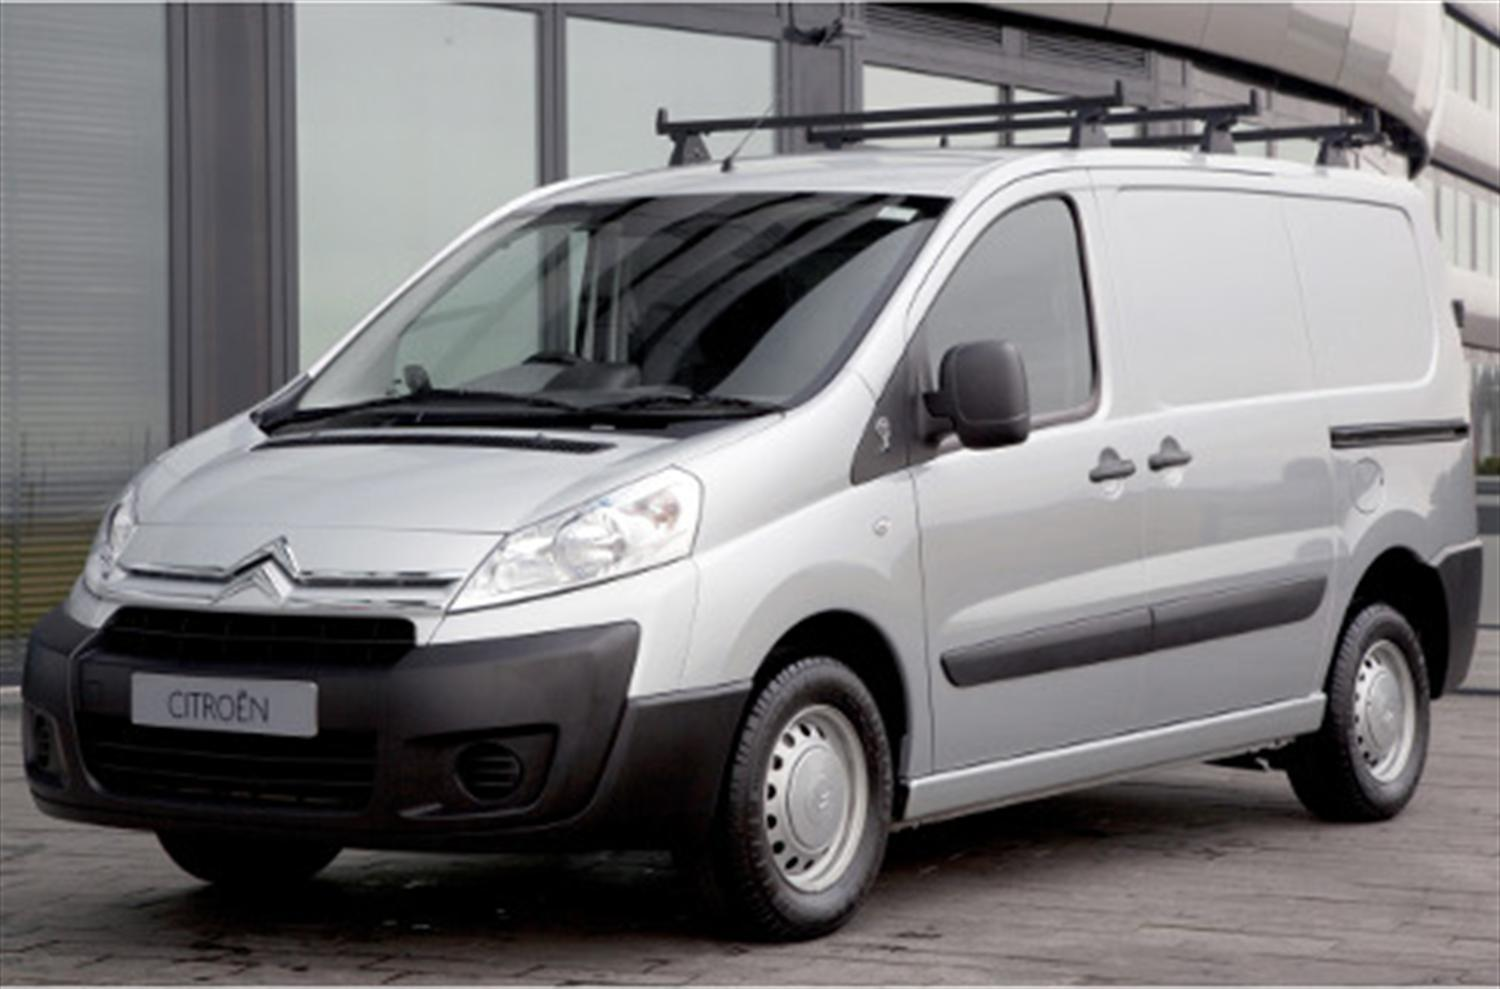 Citroen Dispatch Tradesman Limited Edition Revealed